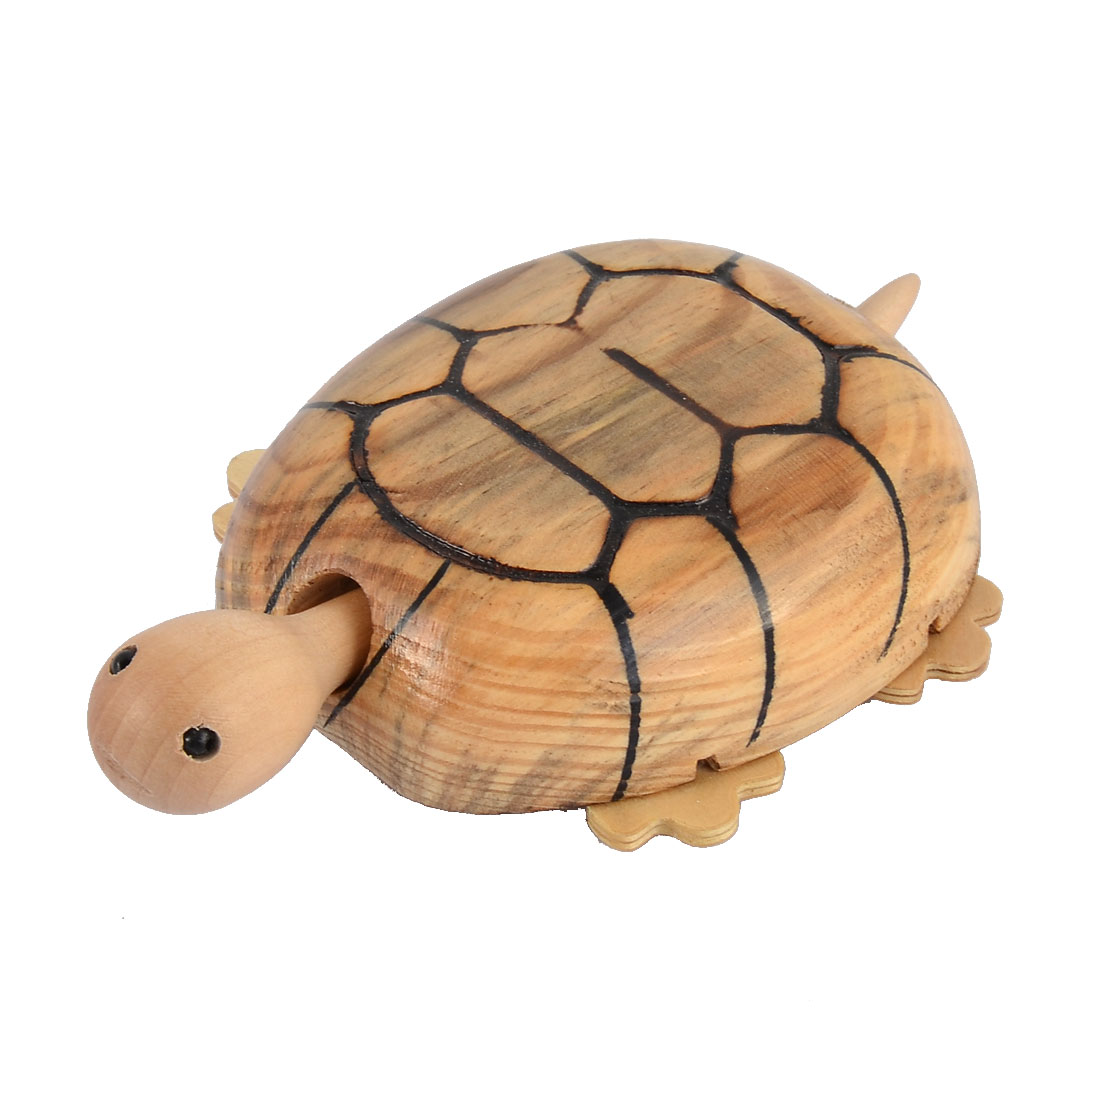 Toy Room Wooden Handcraft Money Drawing Decoration Playmobile Tortoise Turtle